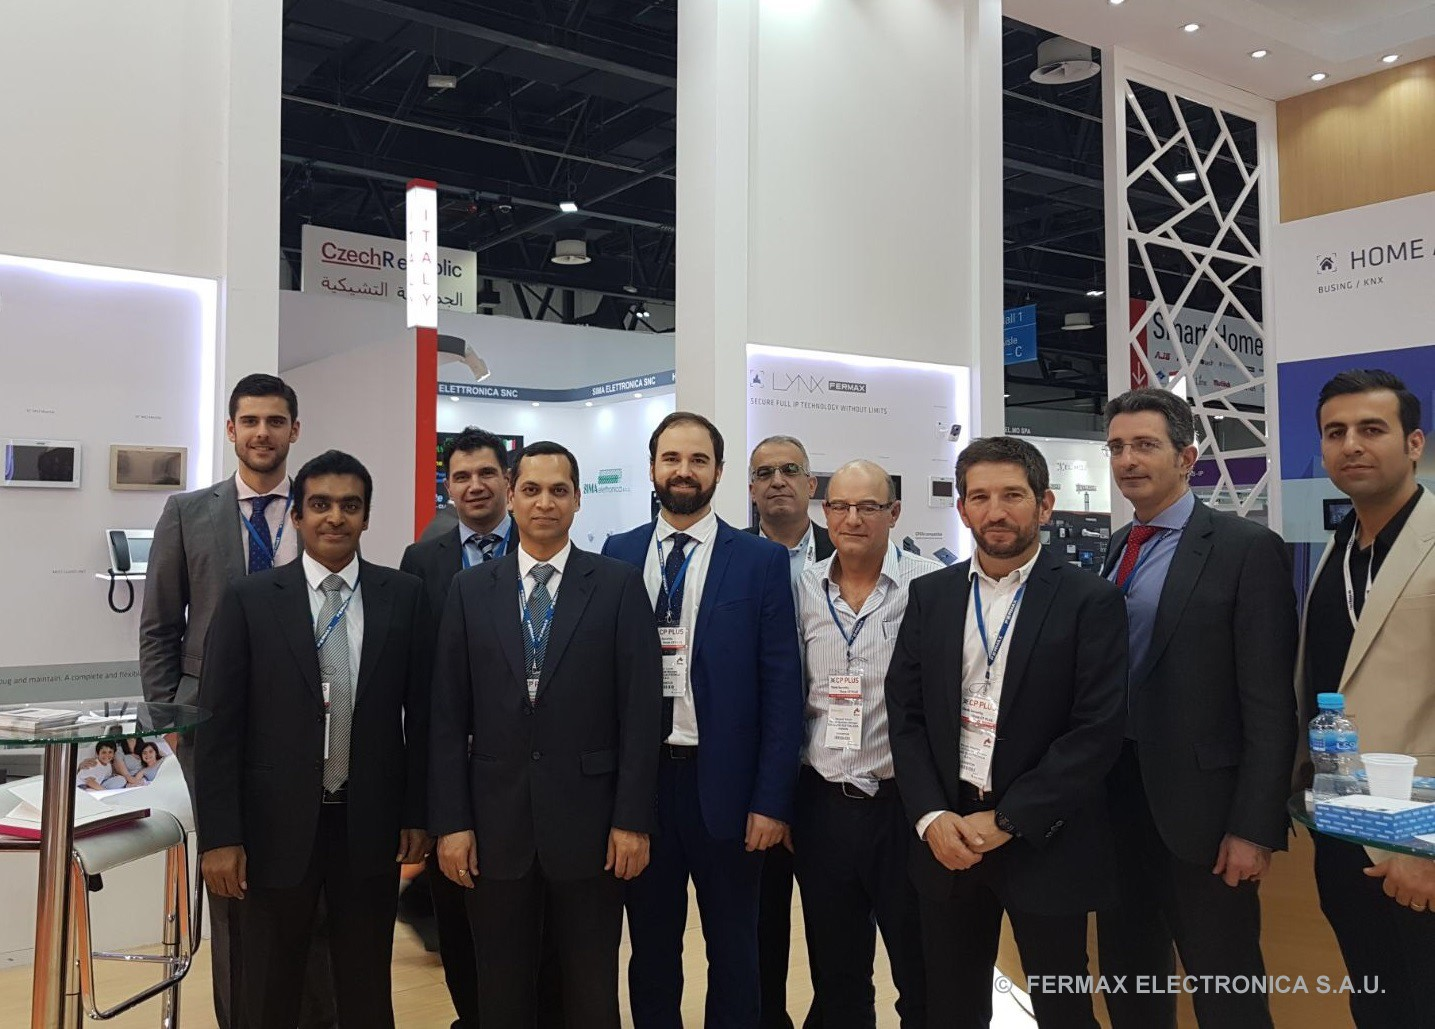 The Fermax team at Intersec 2018